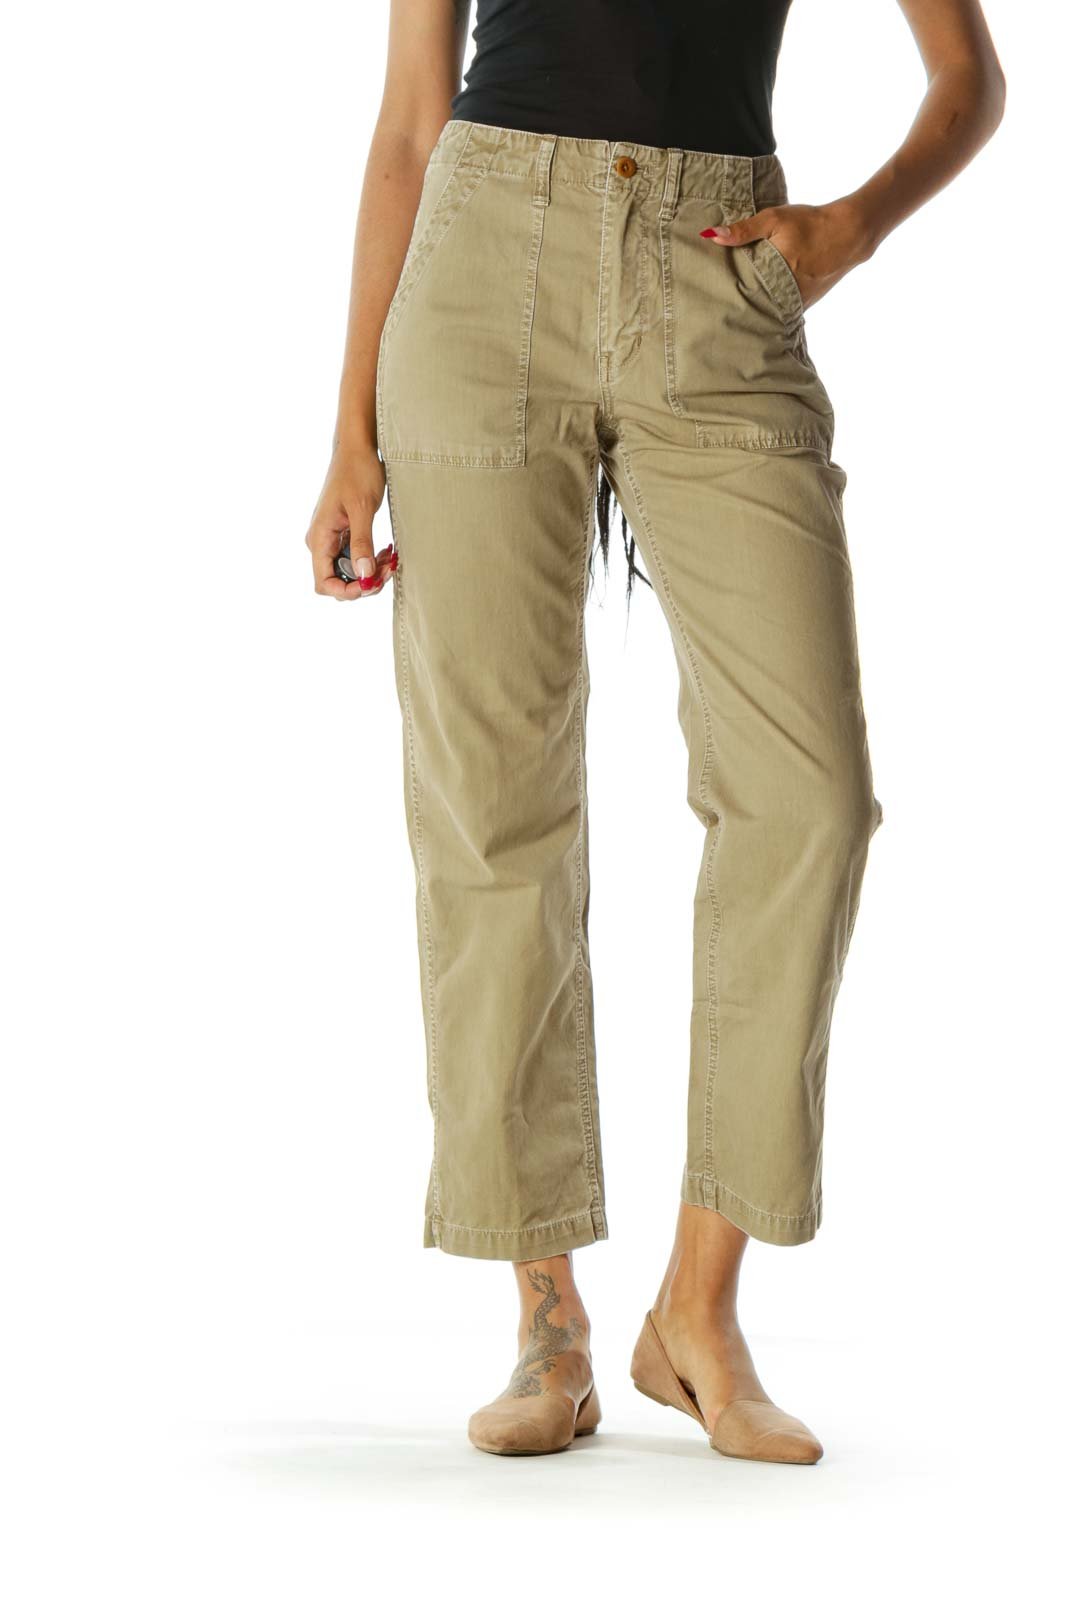 Washed Green 100% Cotton Pocketed Denim Cargo Pants Front